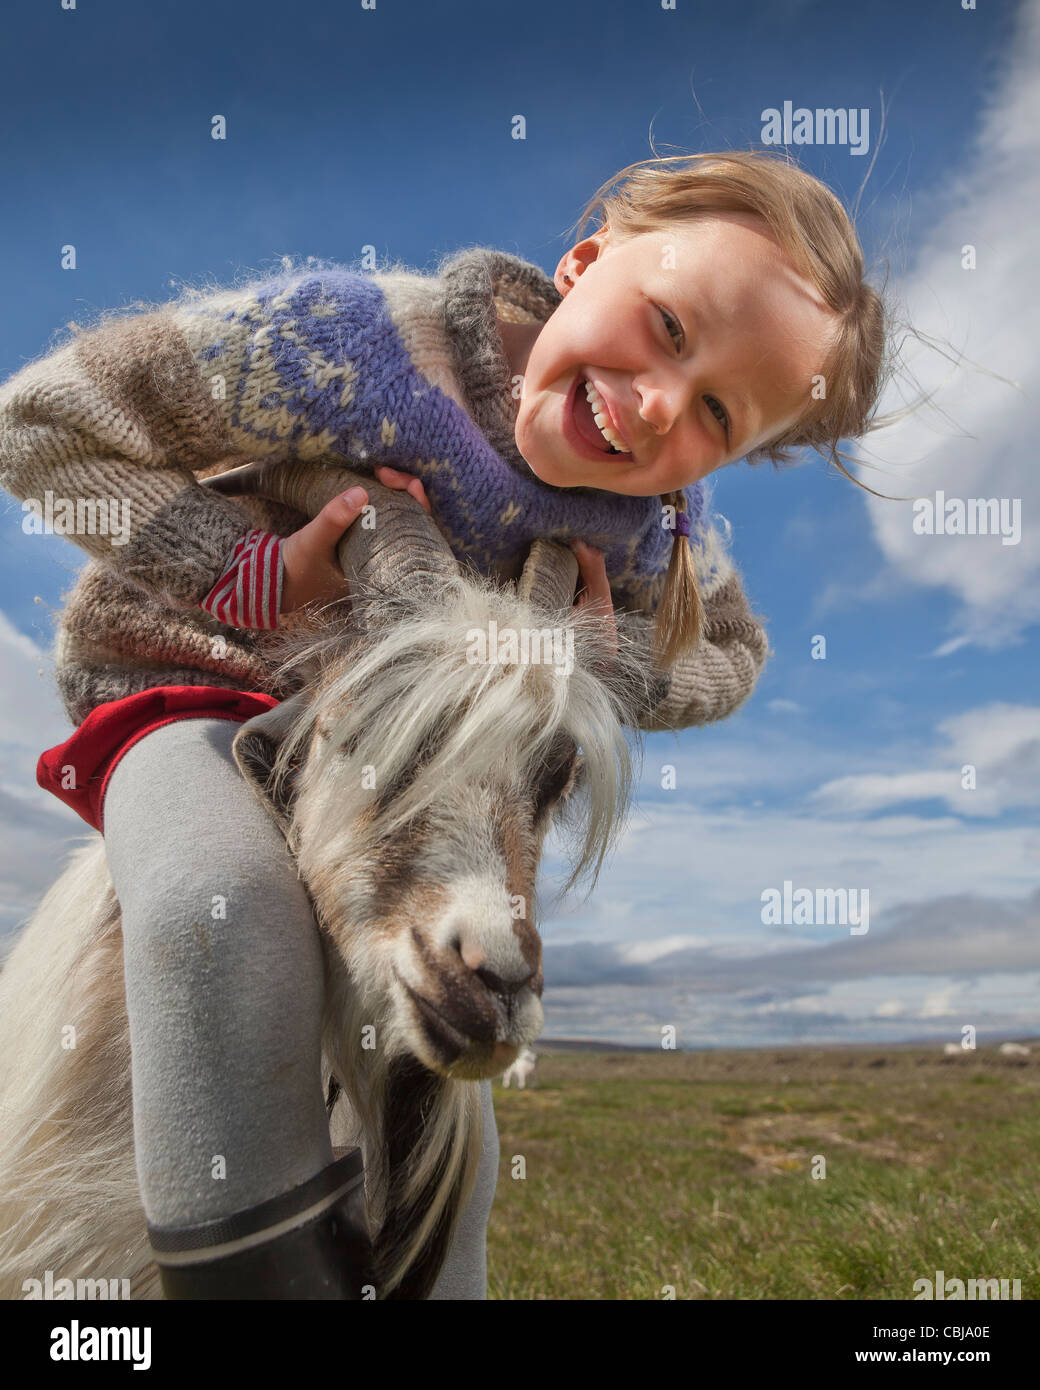 Fille avec chèvre, chèvre farm, Iceland Photo Stock